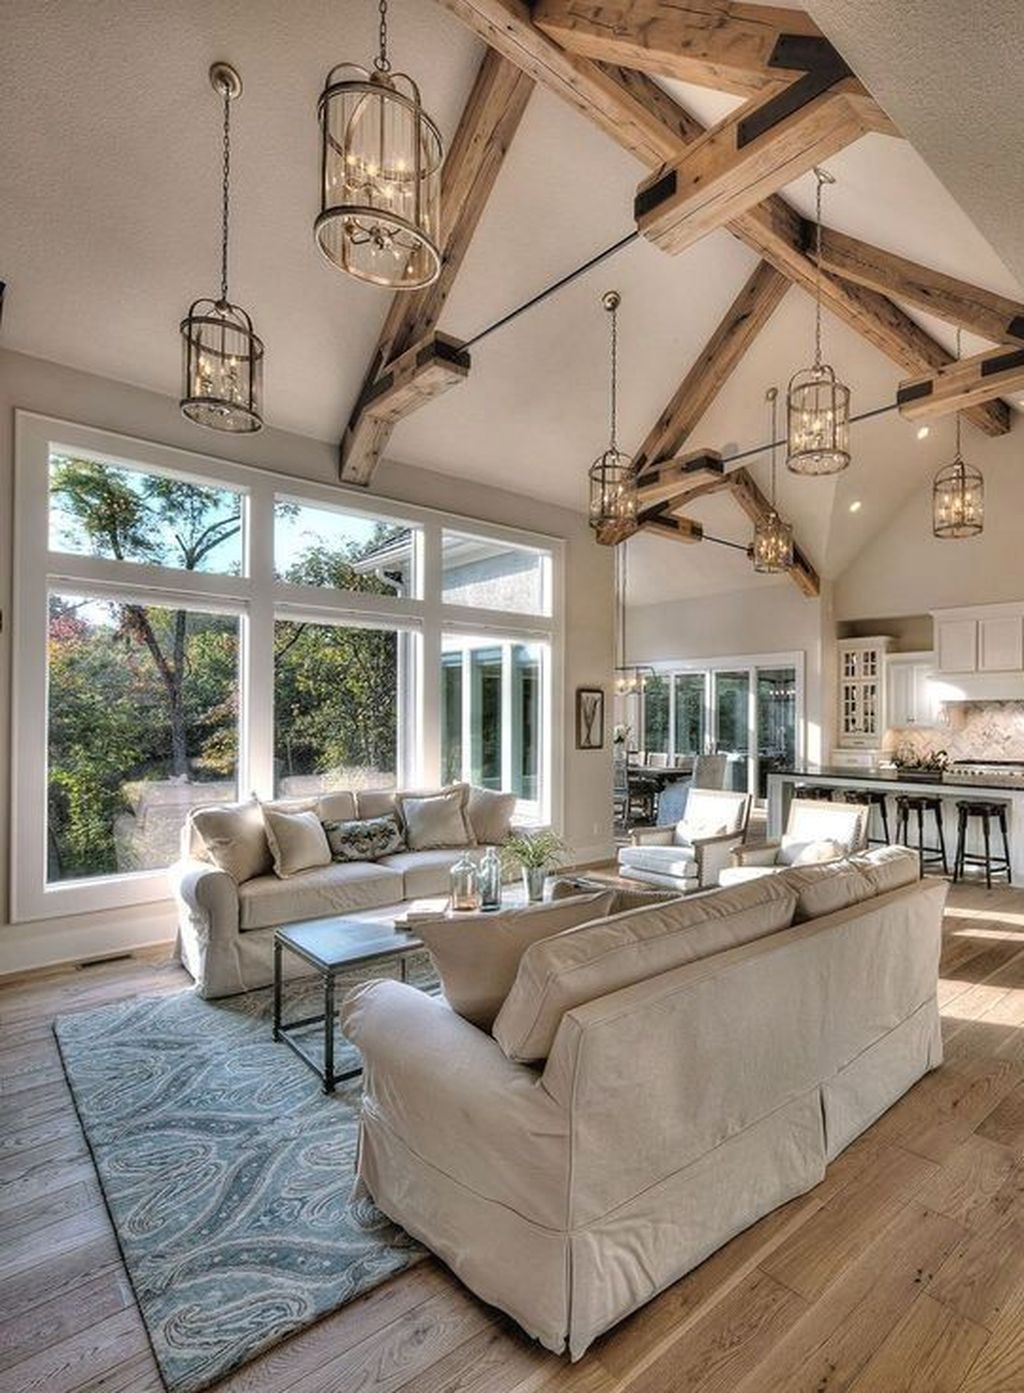 Fantastic Open Plan Living Room Design Ideas To Copy Right Now 31